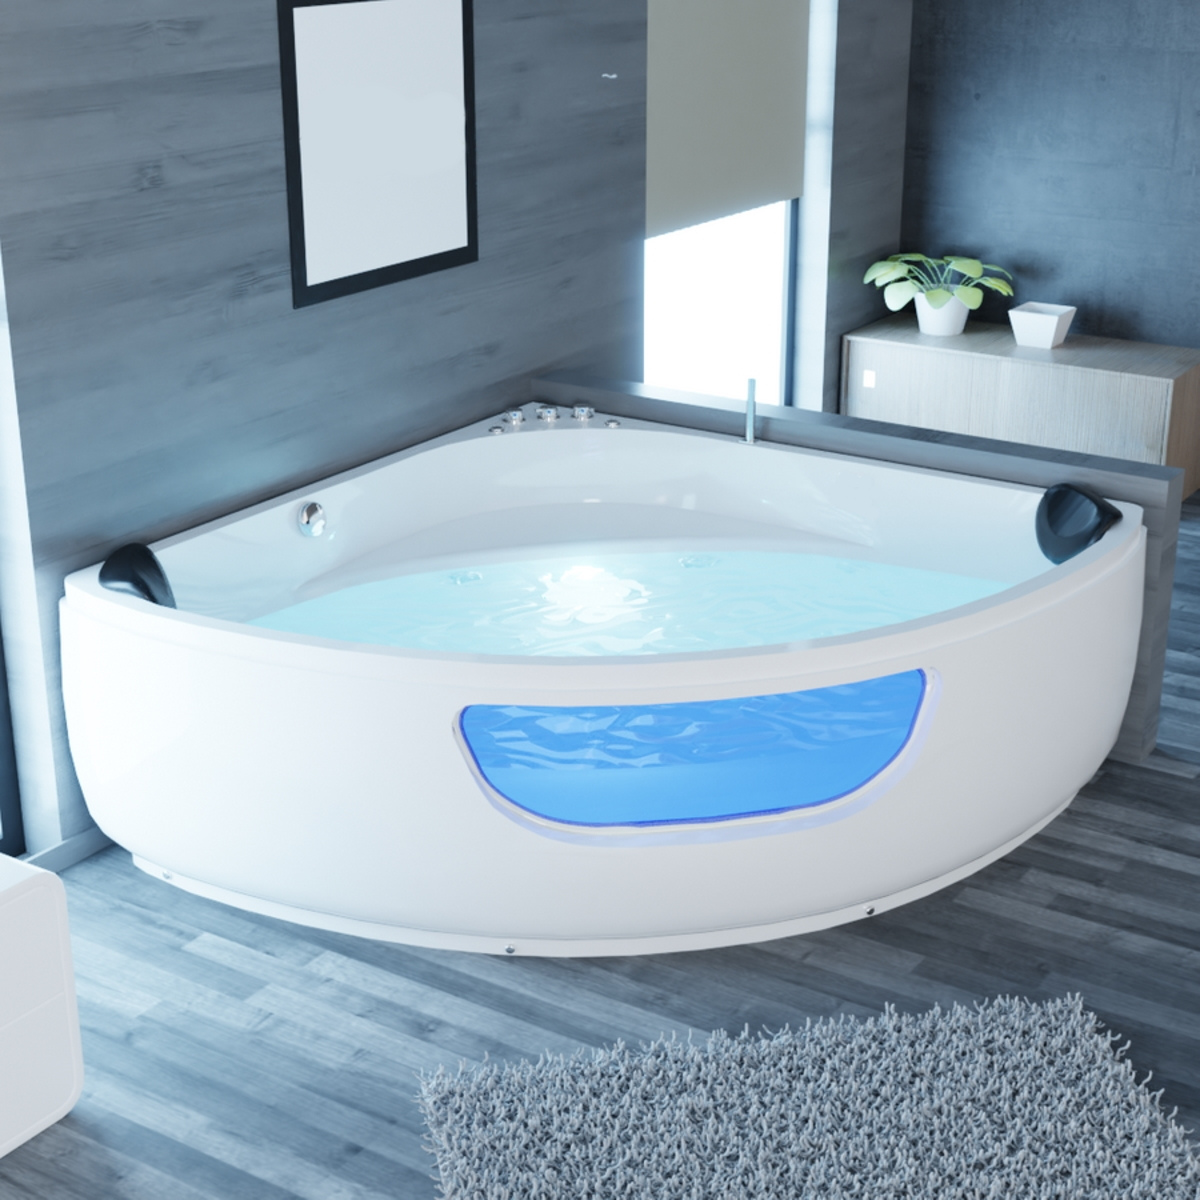 Whirlpool Badewanne 135 X 135 150 X 150 Cm Eckwanne Fur 2 Personen Mit Led Armaturen Gunstig Supply24